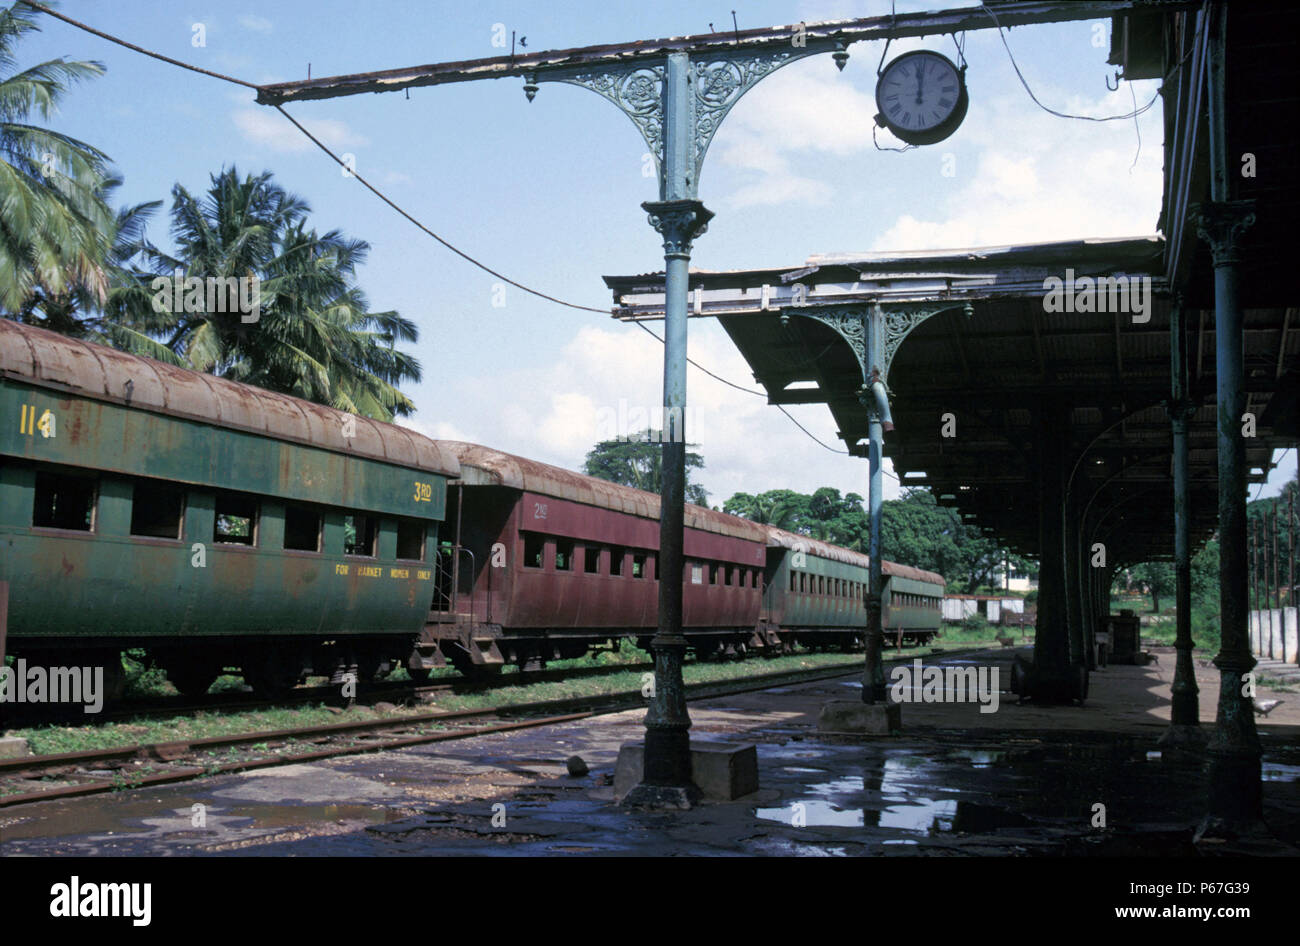 Ghana Railway's Second Station in all its colonial magnificence complete with clock from Gents of Leicester. Tuesday 4 June 1985. - Stock Image